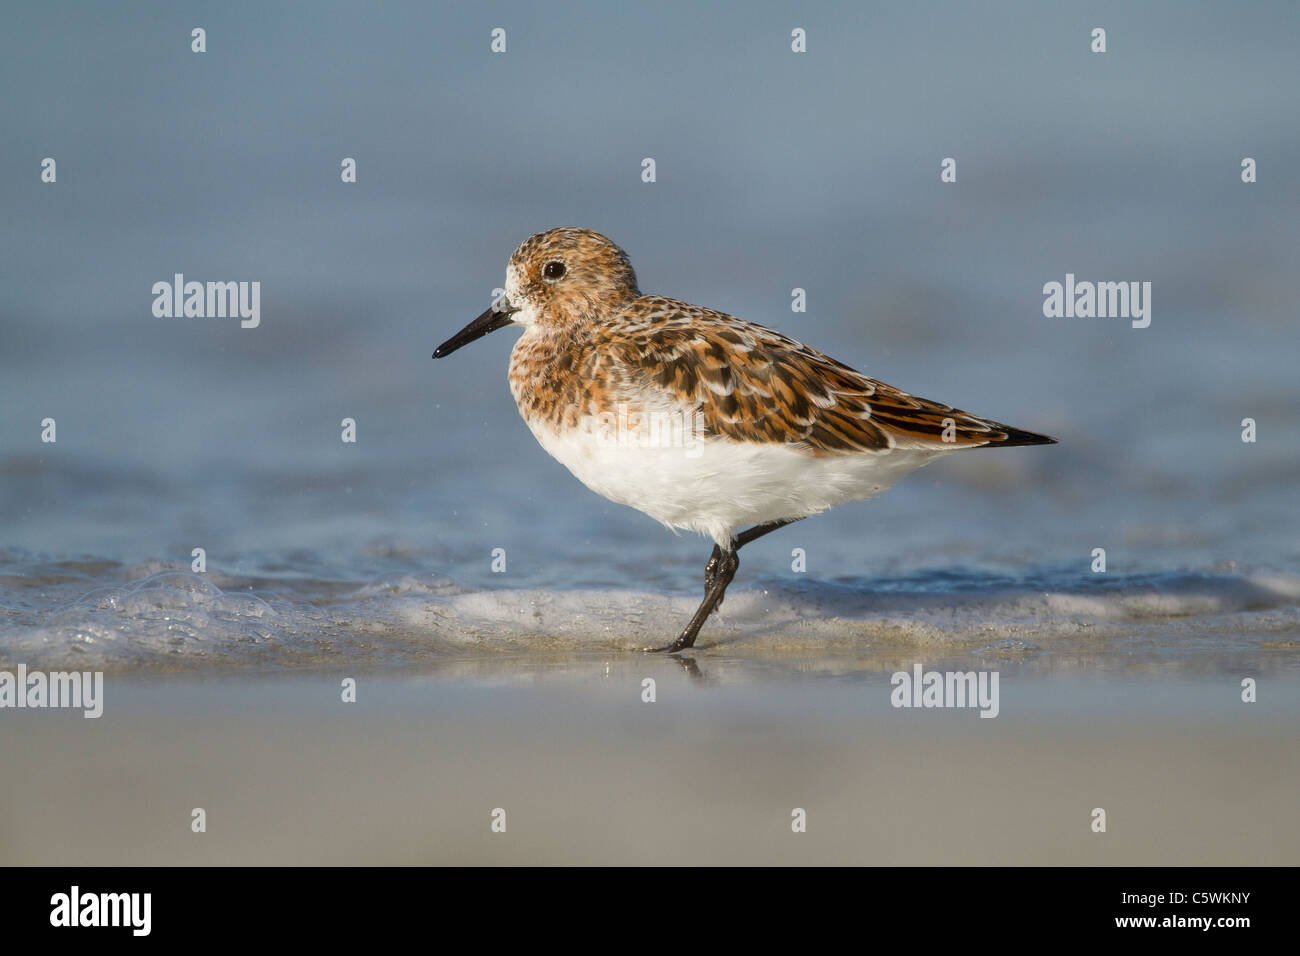 Sanderling in Summer plumage on a beach in Scotland, UK during migration. This species breeds in the high arctic. - Stock Image